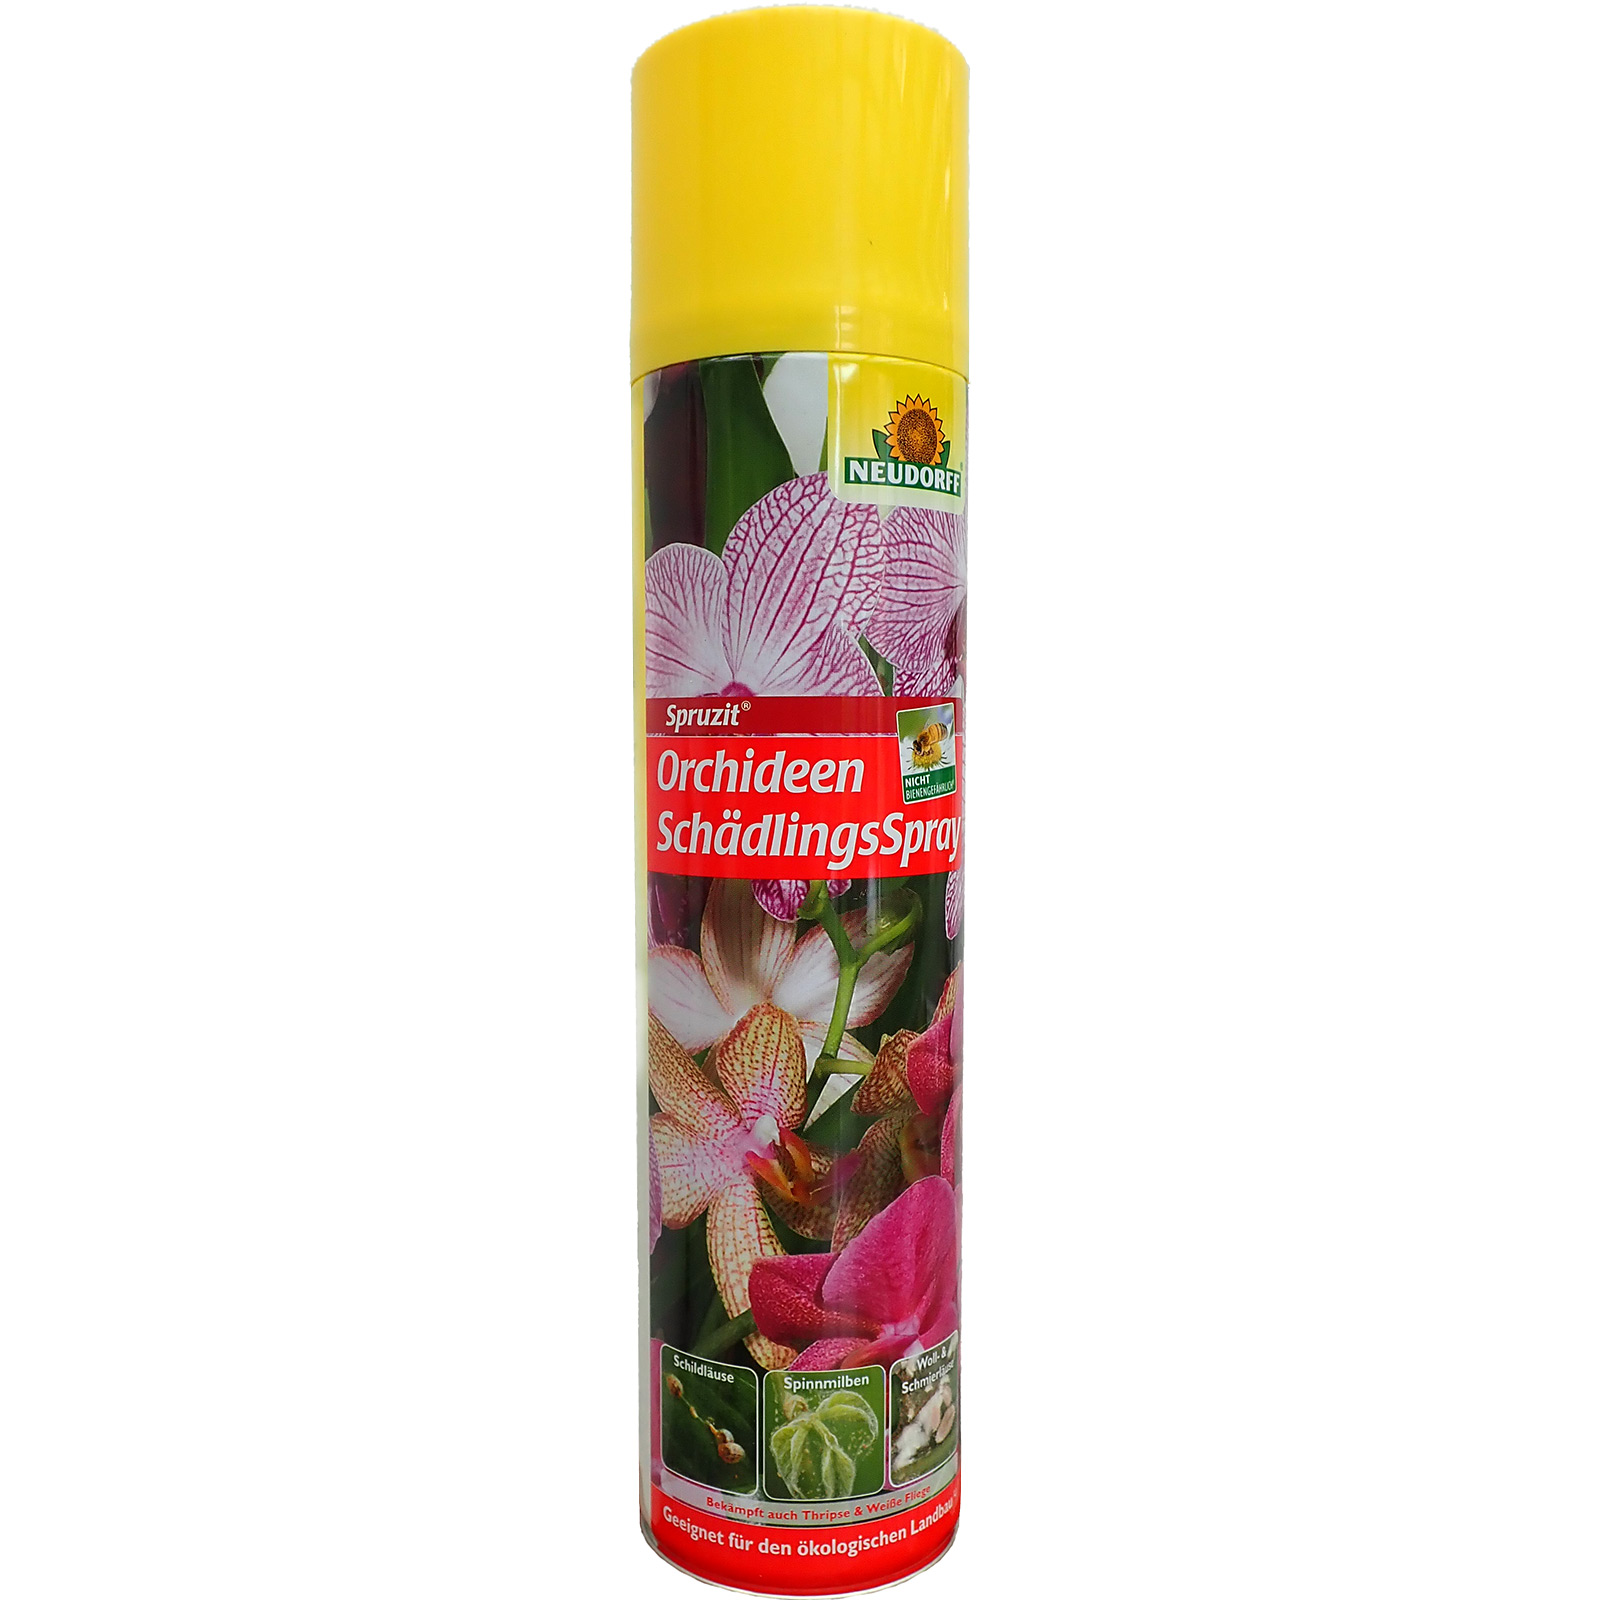 Orchid insect spray